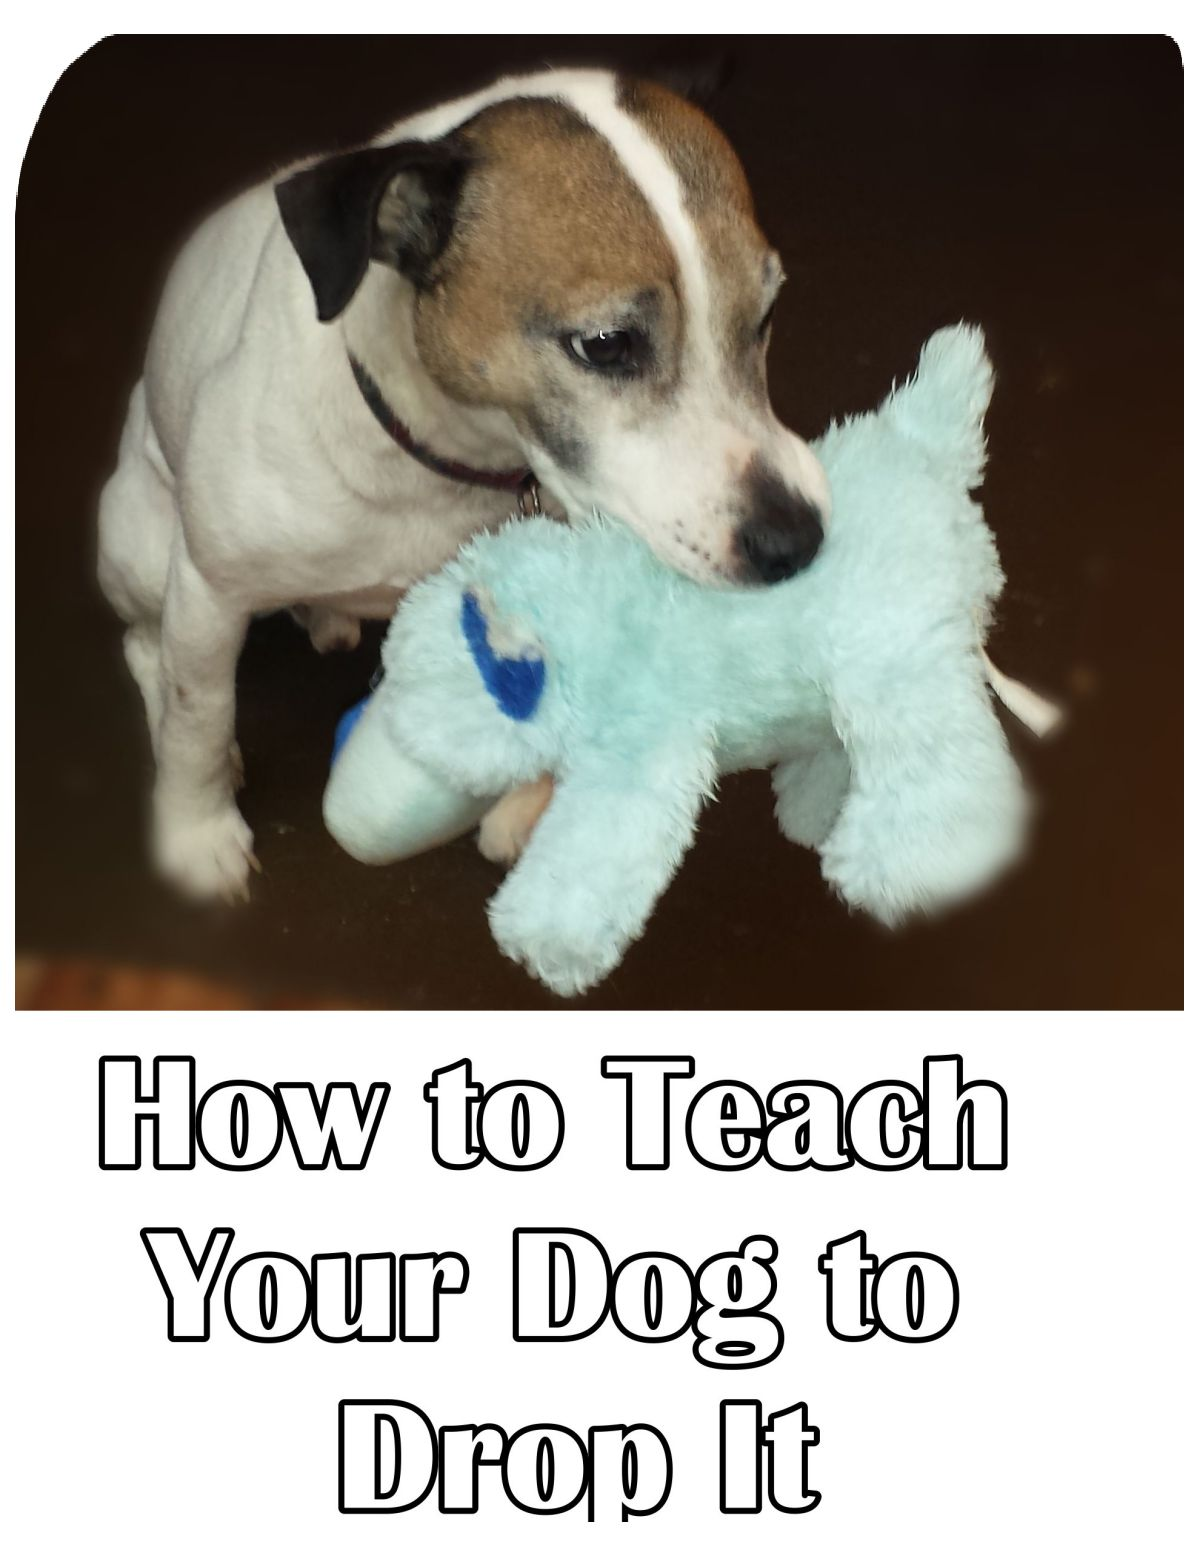 How To Teach Your Dog to Drop It